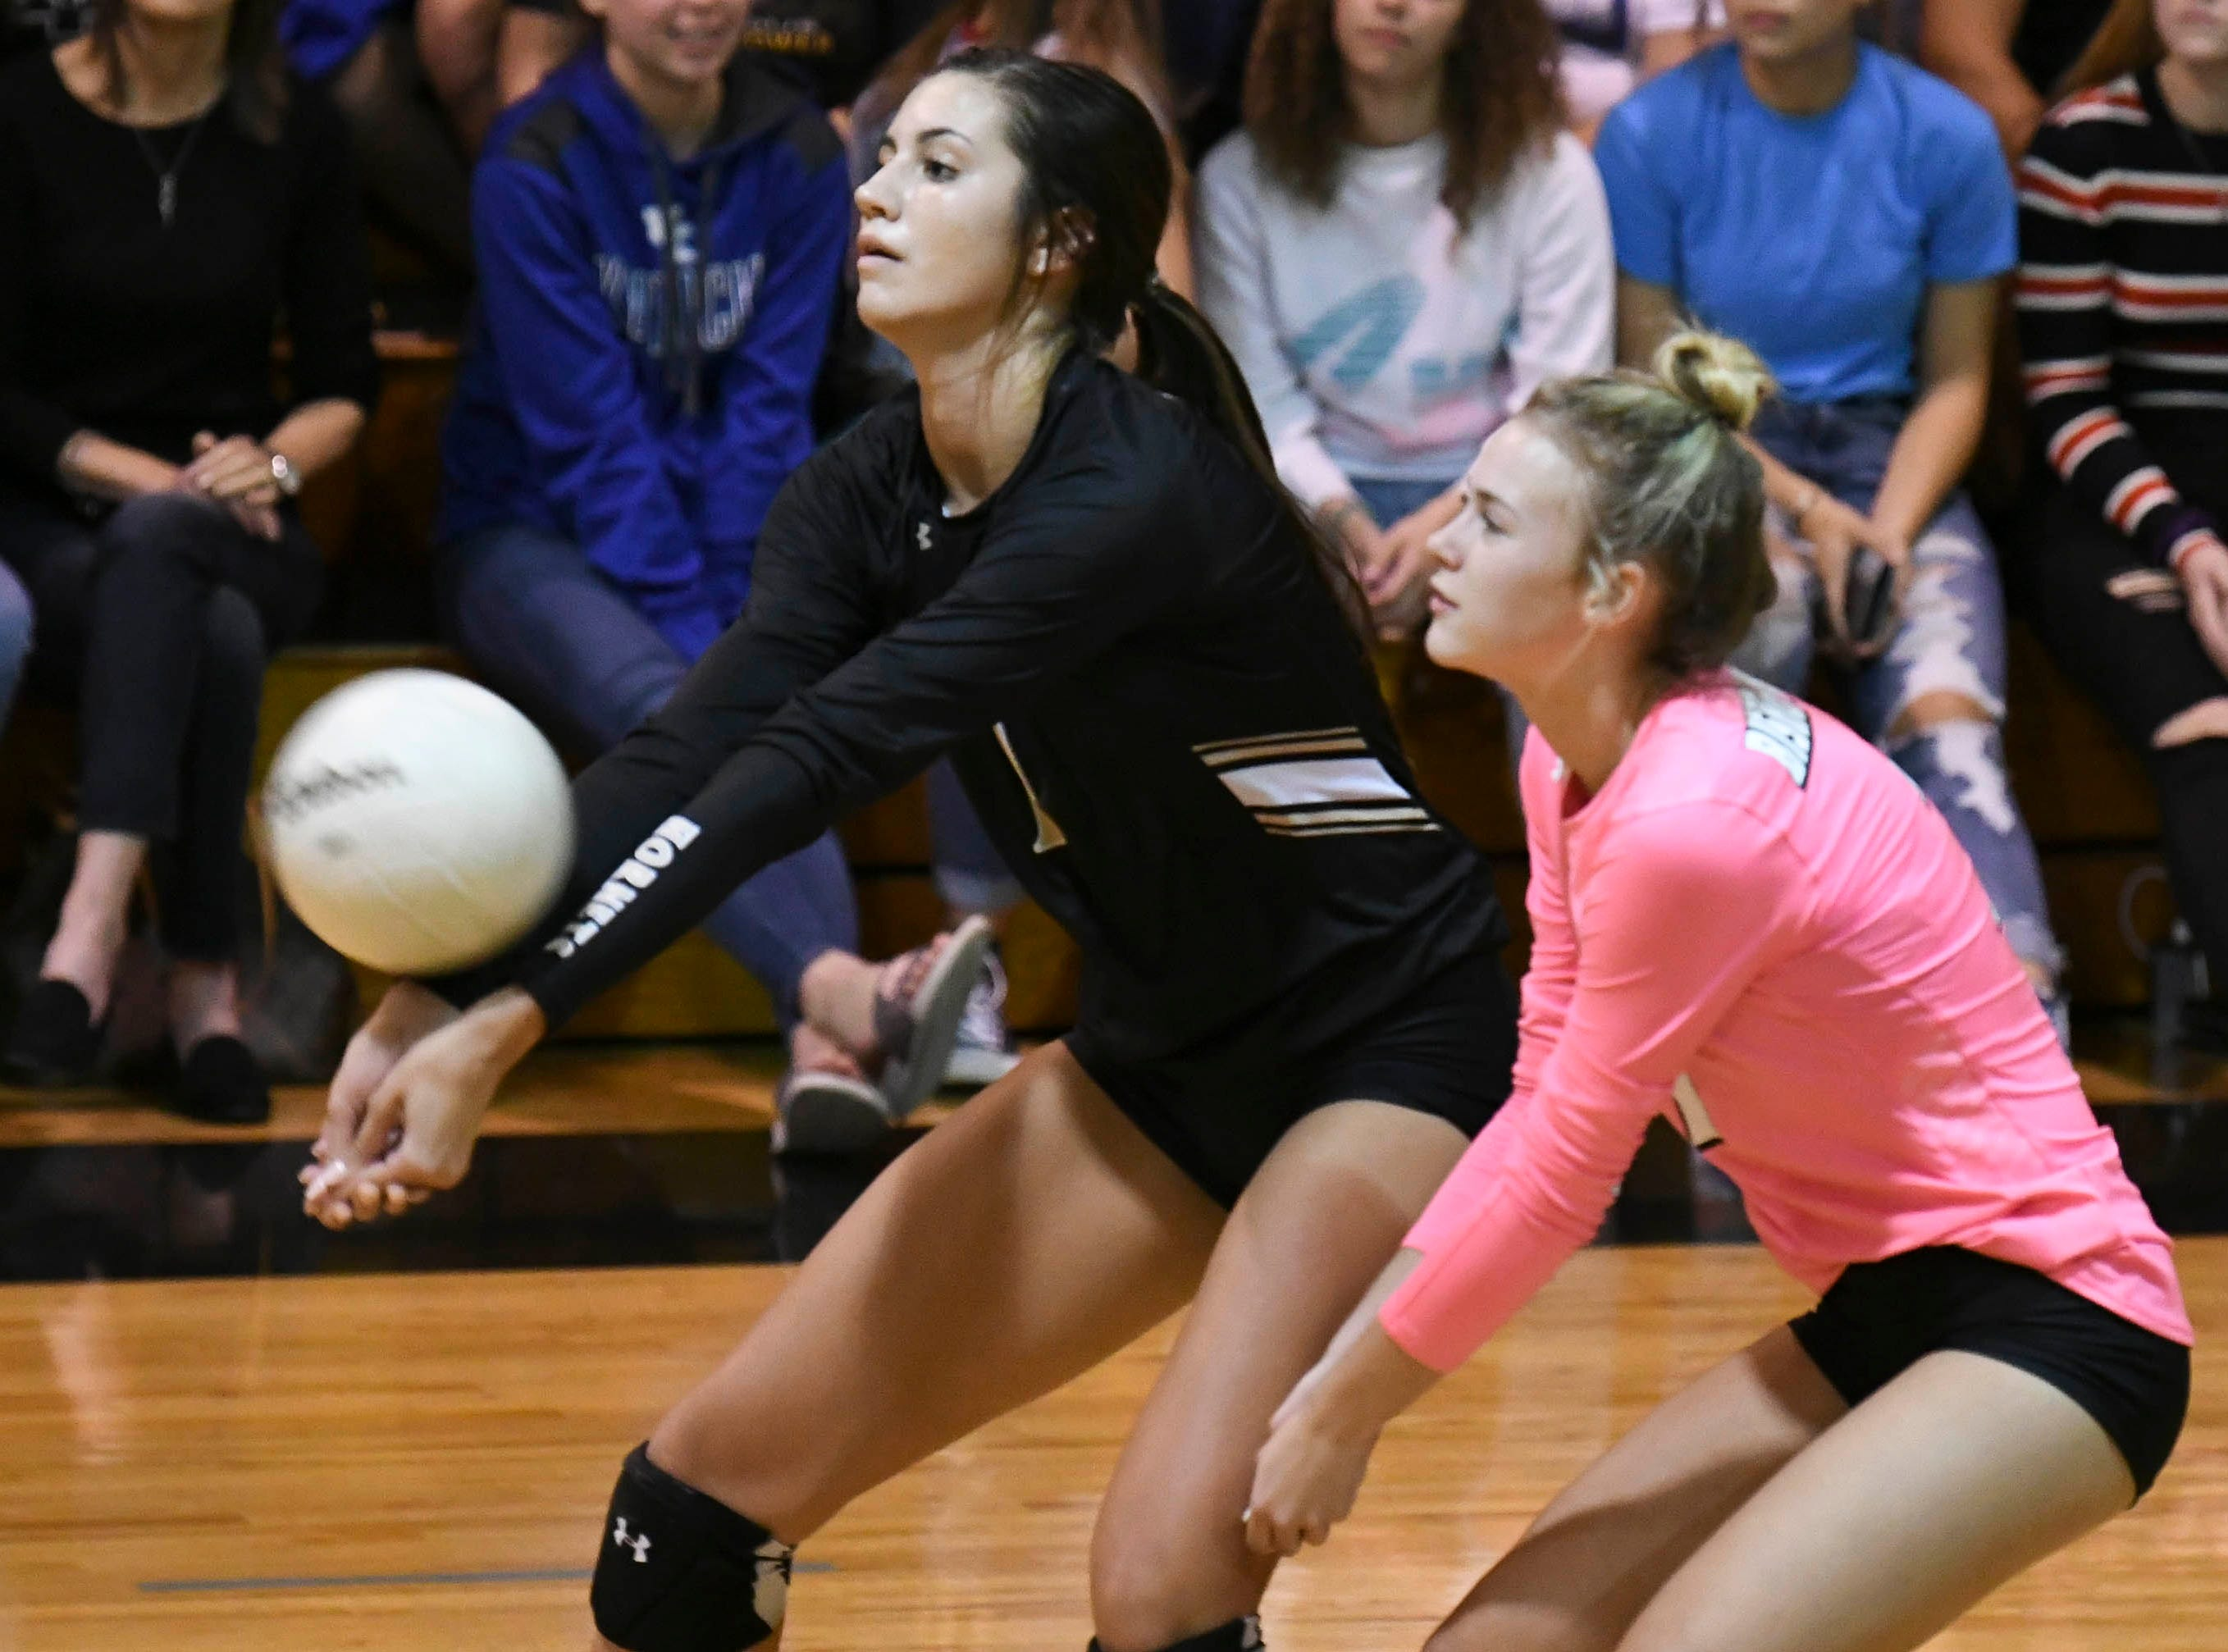 Bishop Moore players go for the same ball during Tuesday volleyball regional semifinal against Merritt Island.